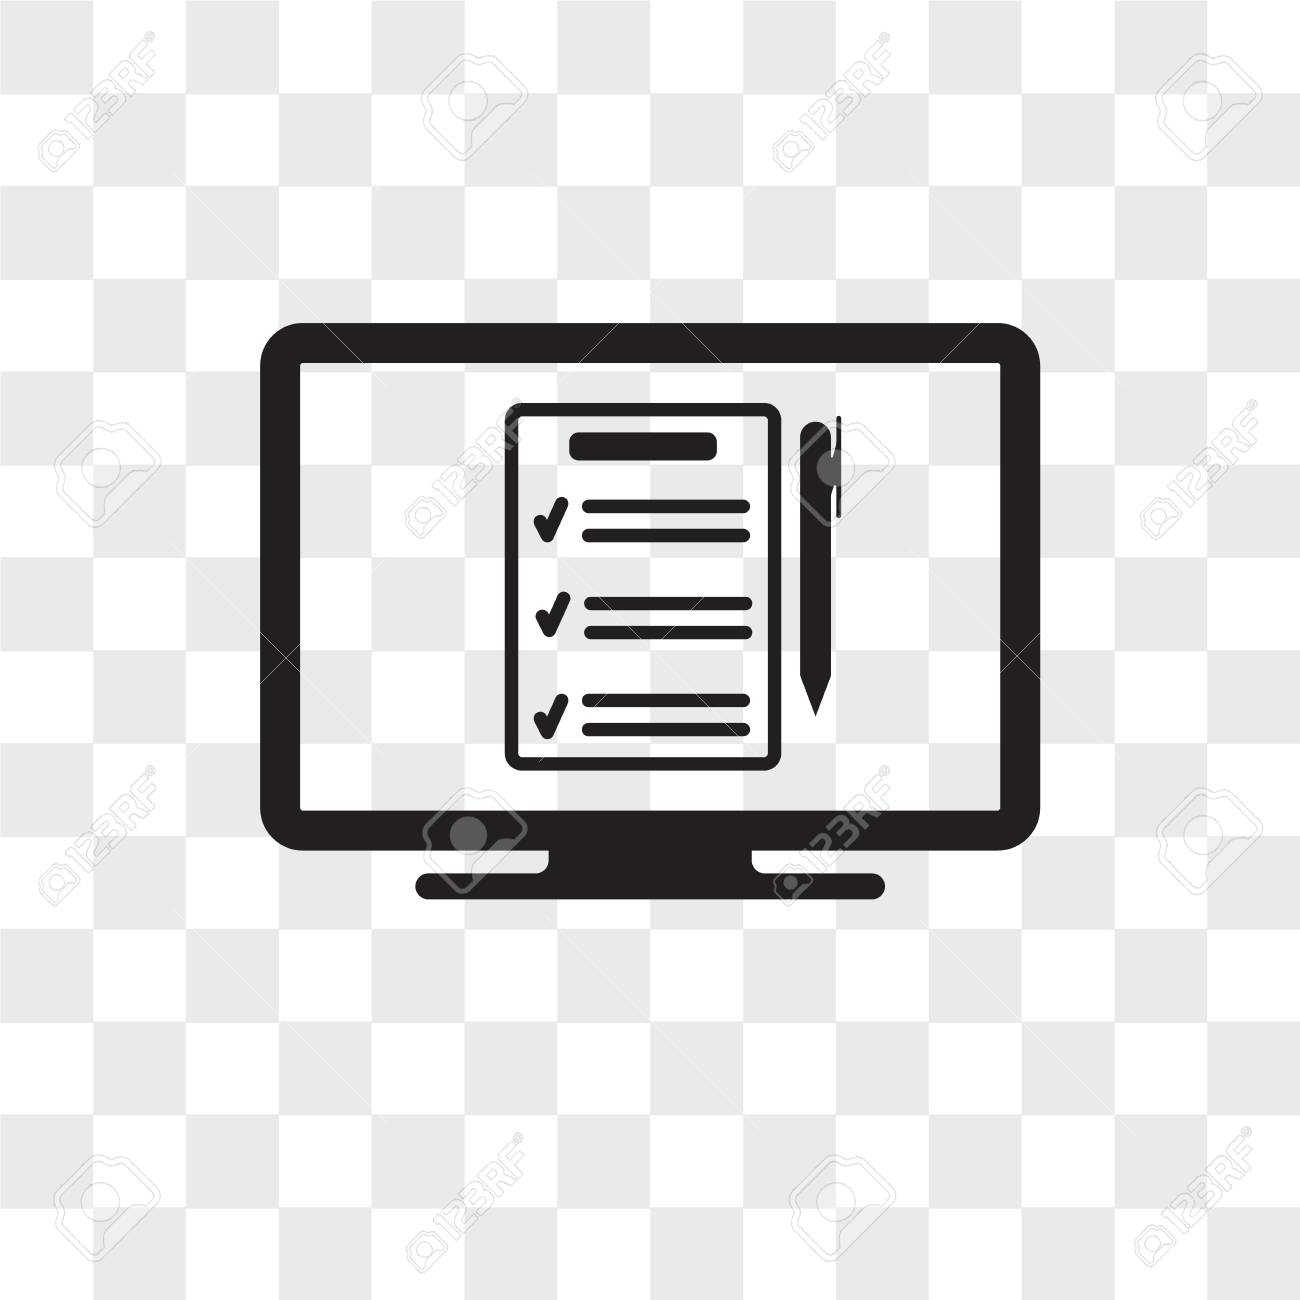 Online Form Vector Icon Isolated On Transparent Background Online Royalty Free Cliparts Vectors And Stock Illustration Image 109130212